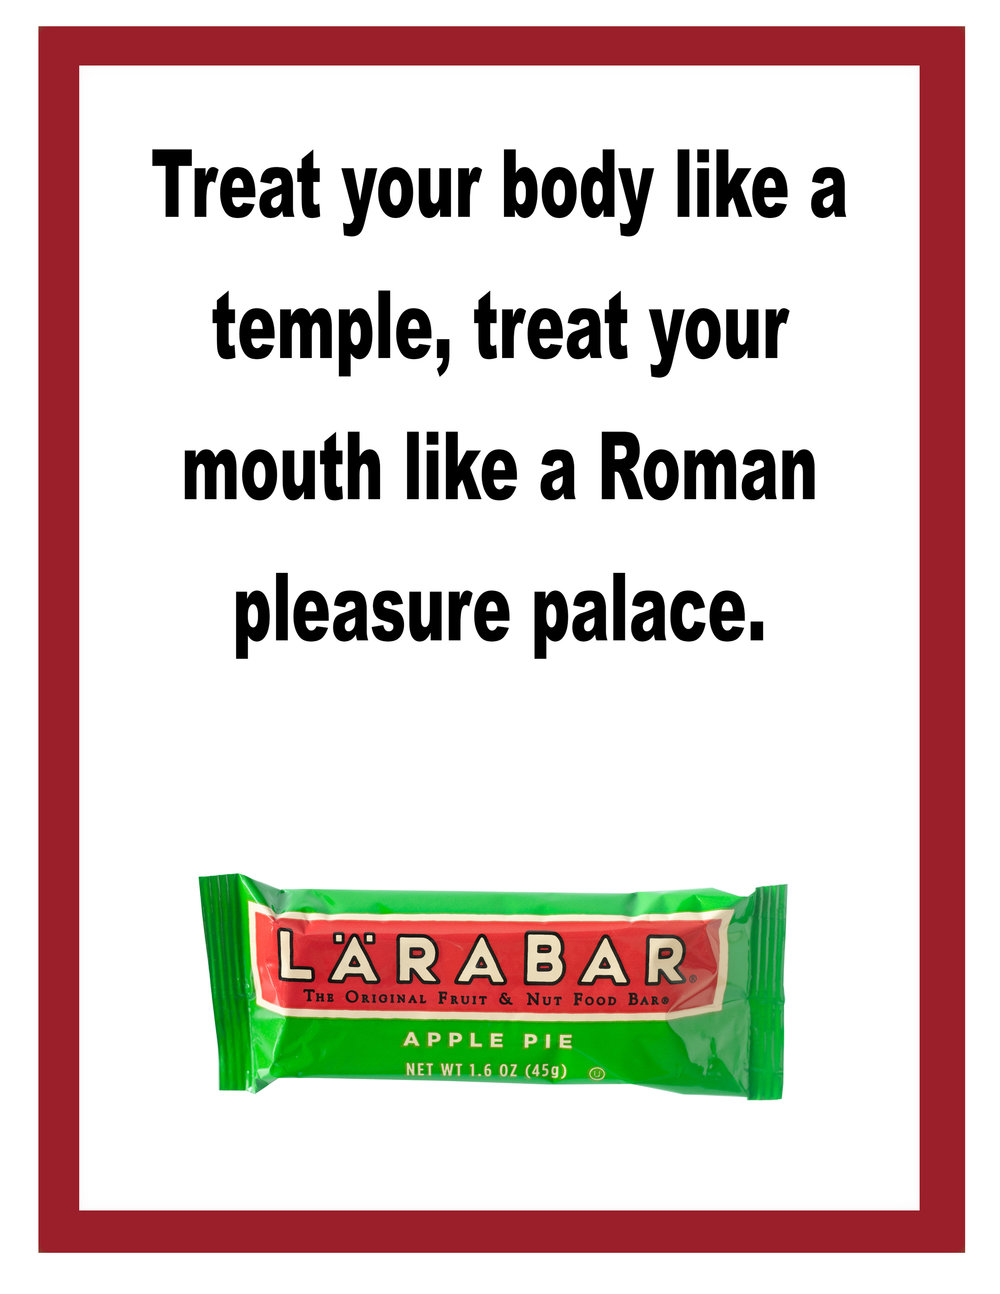 LarabarRomanPleasurePalace.jpg